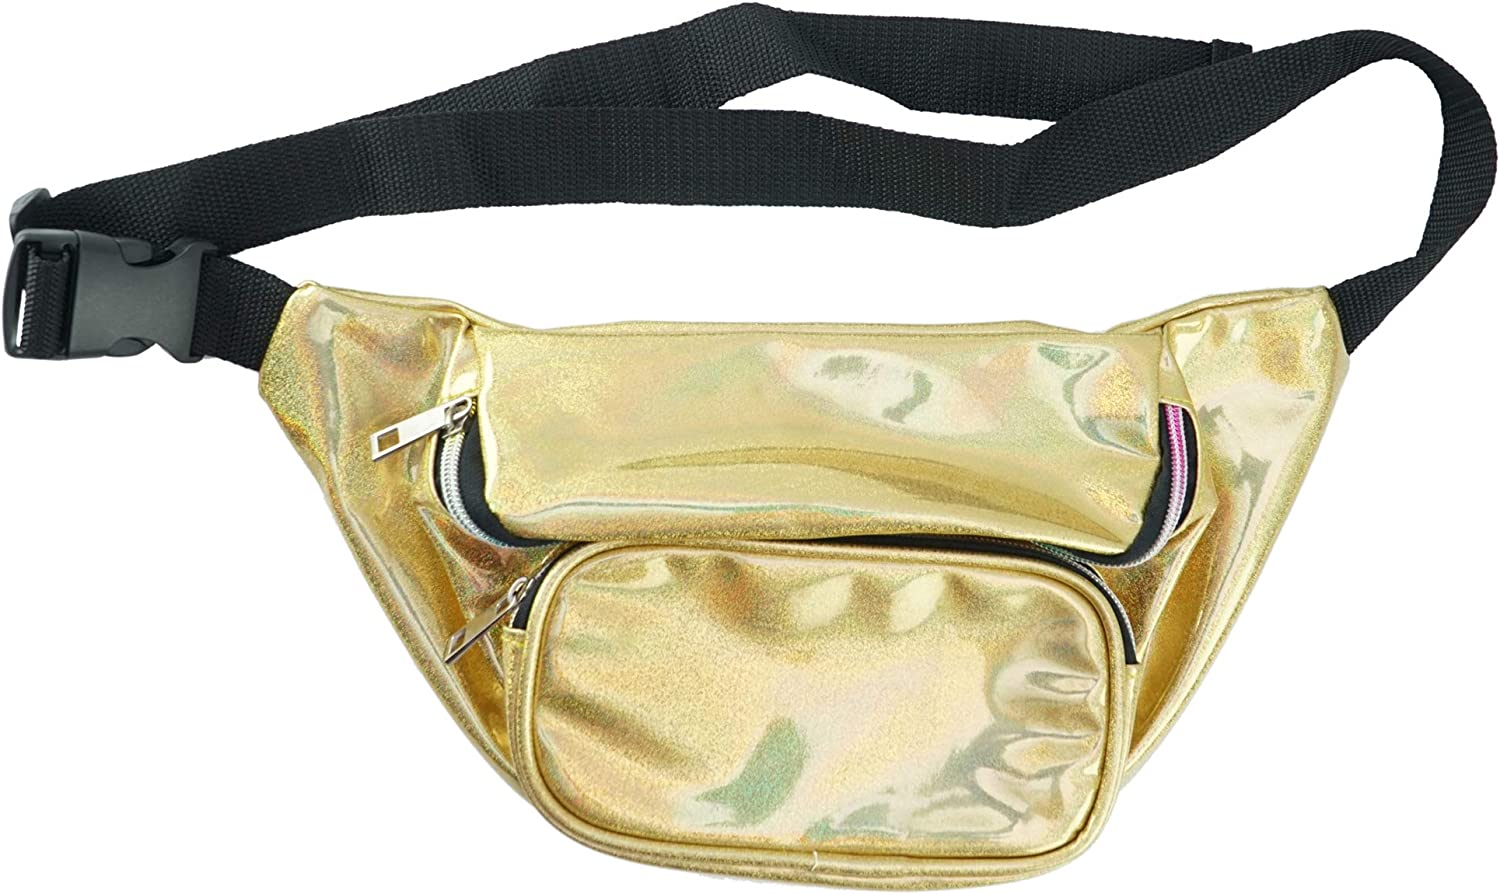 Home X Holographic Fanny Pack-Cute Waist Bags with Adjustable Belt for Rave, Festival- Gold Sparkle Fanny Pack, Running Belt, Waterproof Bum Bag with Pockets